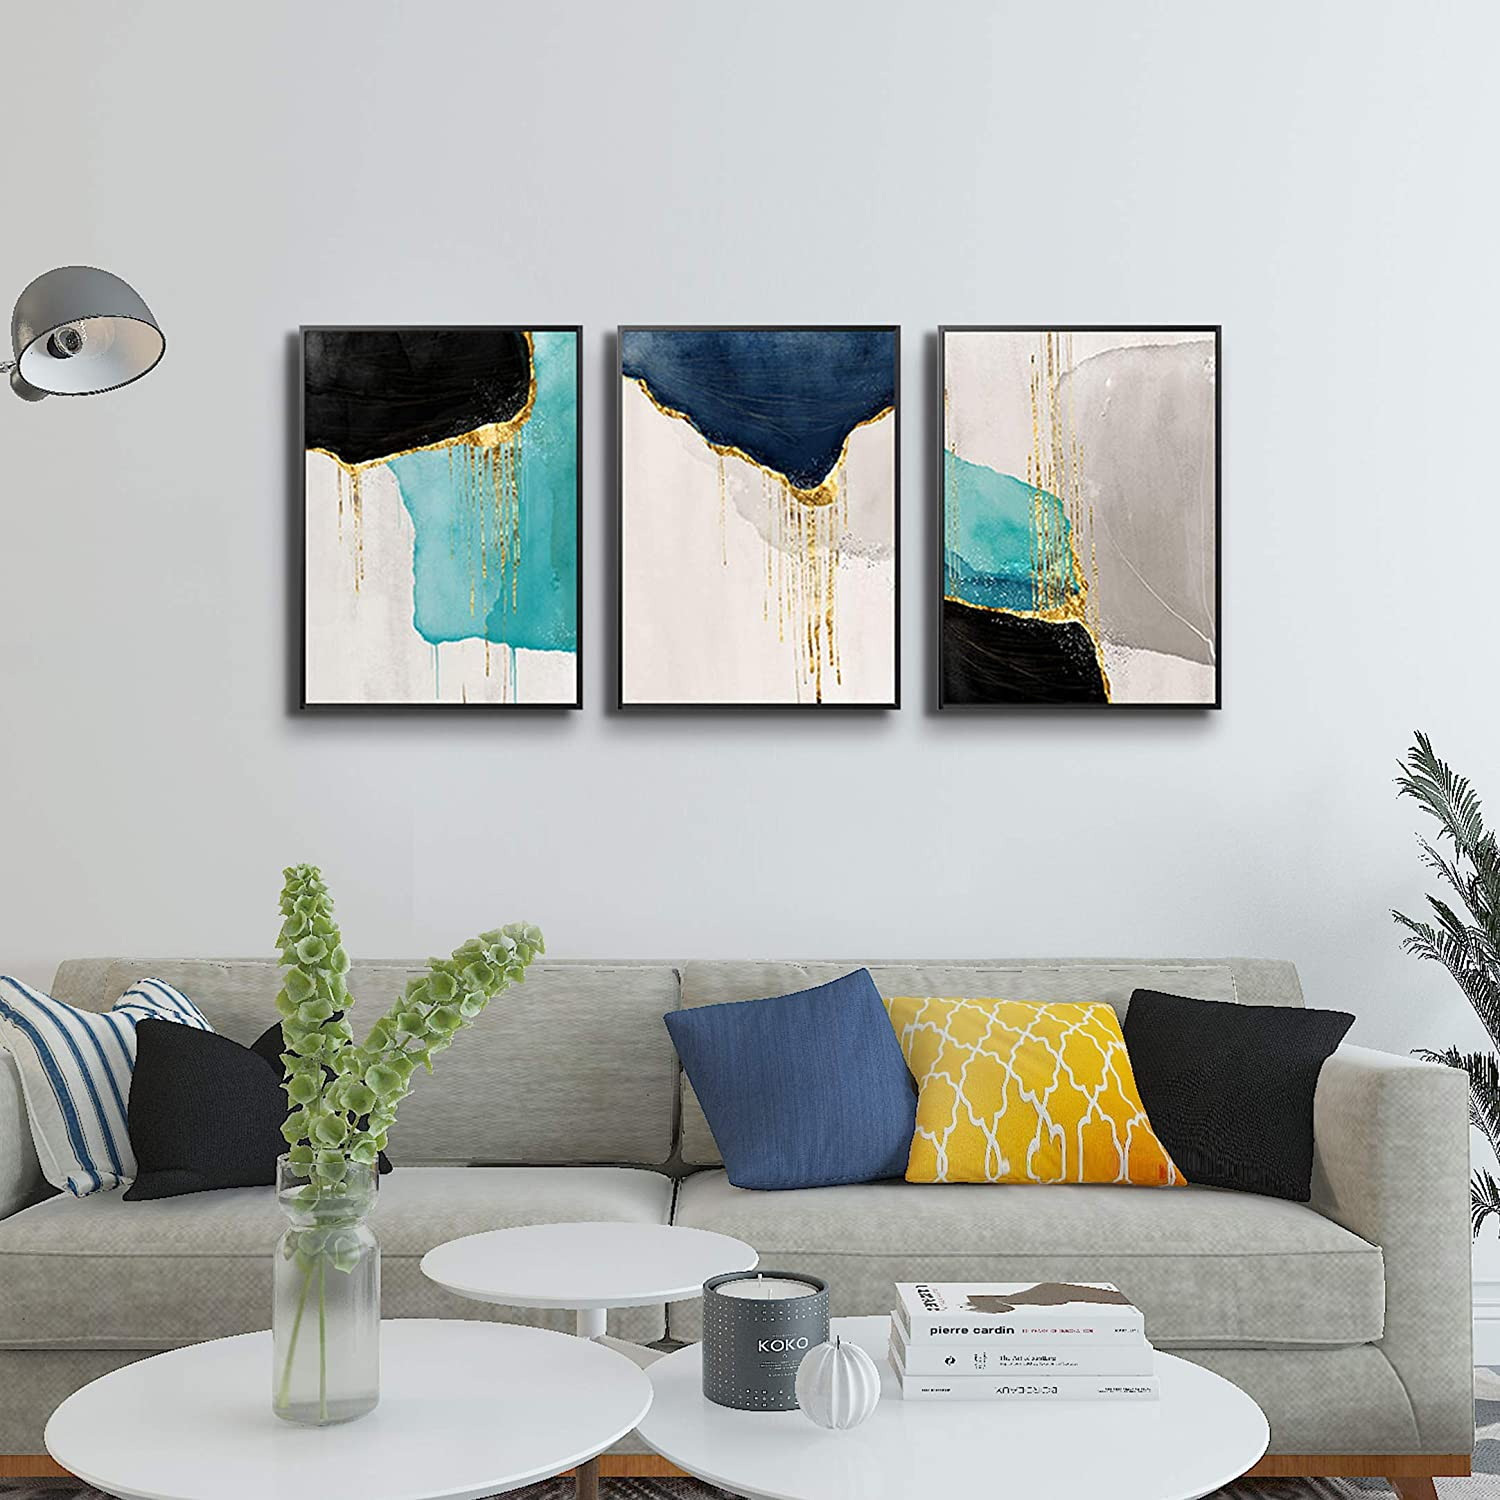 Artland Canvas Wall Art For Living Room Modern Navy Blue Abstract Mountains Oil Painting Landscape Artworks For Bedroom Bathroom Kitchen Wall Decor Framed Ready To Hang 20x40 Inches Paintings Home Kitchen